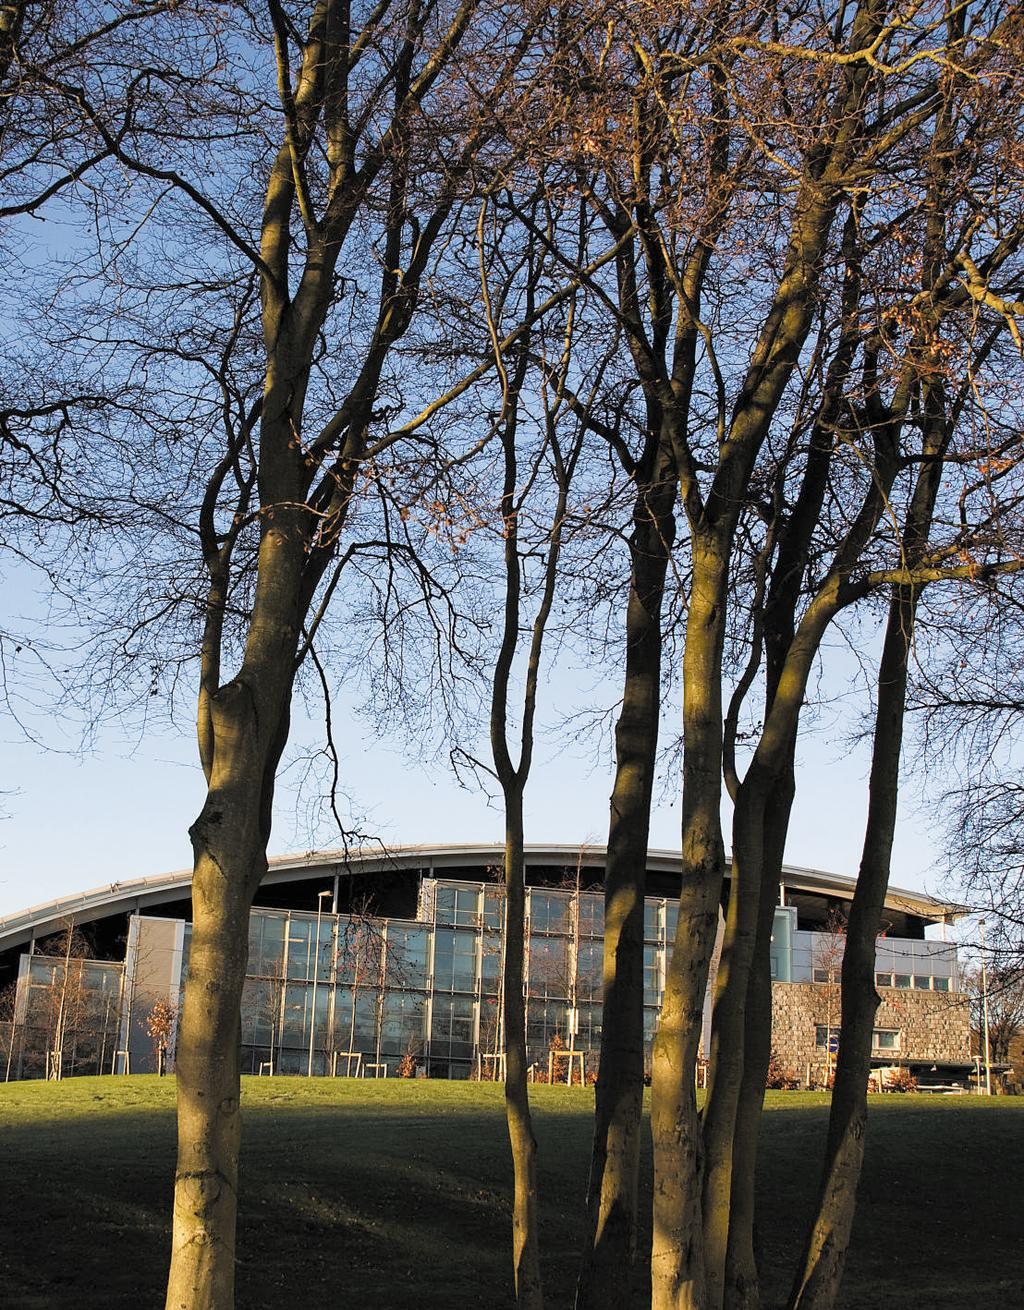 ABOUT RGU RGU is considered one of Scotland s New Universities but its history actually dates back to the 1600s.